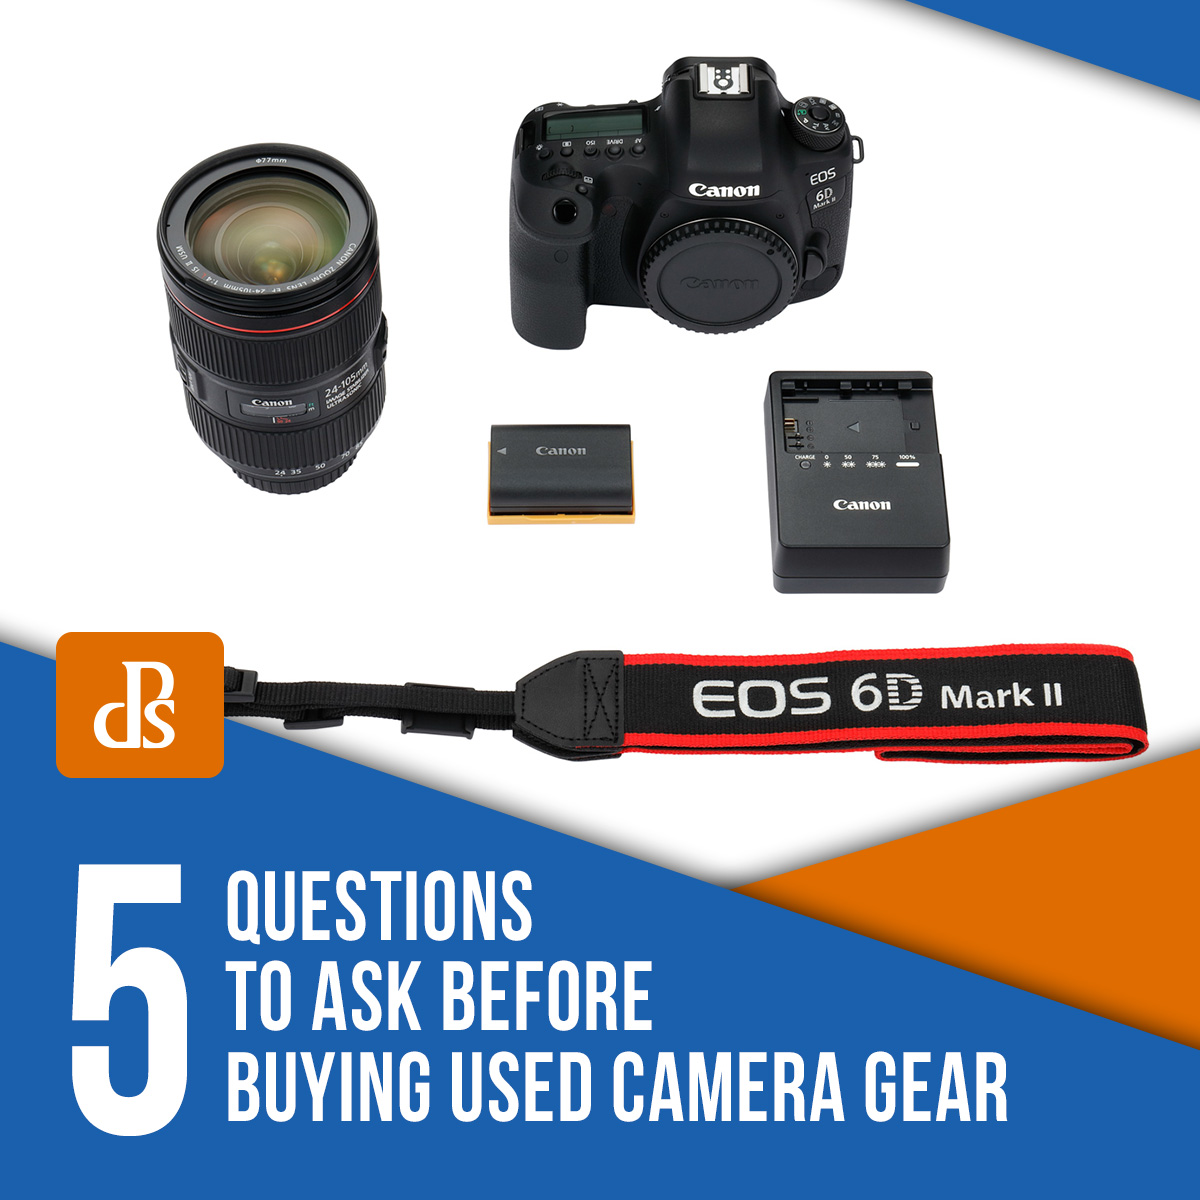 Questions to Ask Before Buying Used Camera Gear